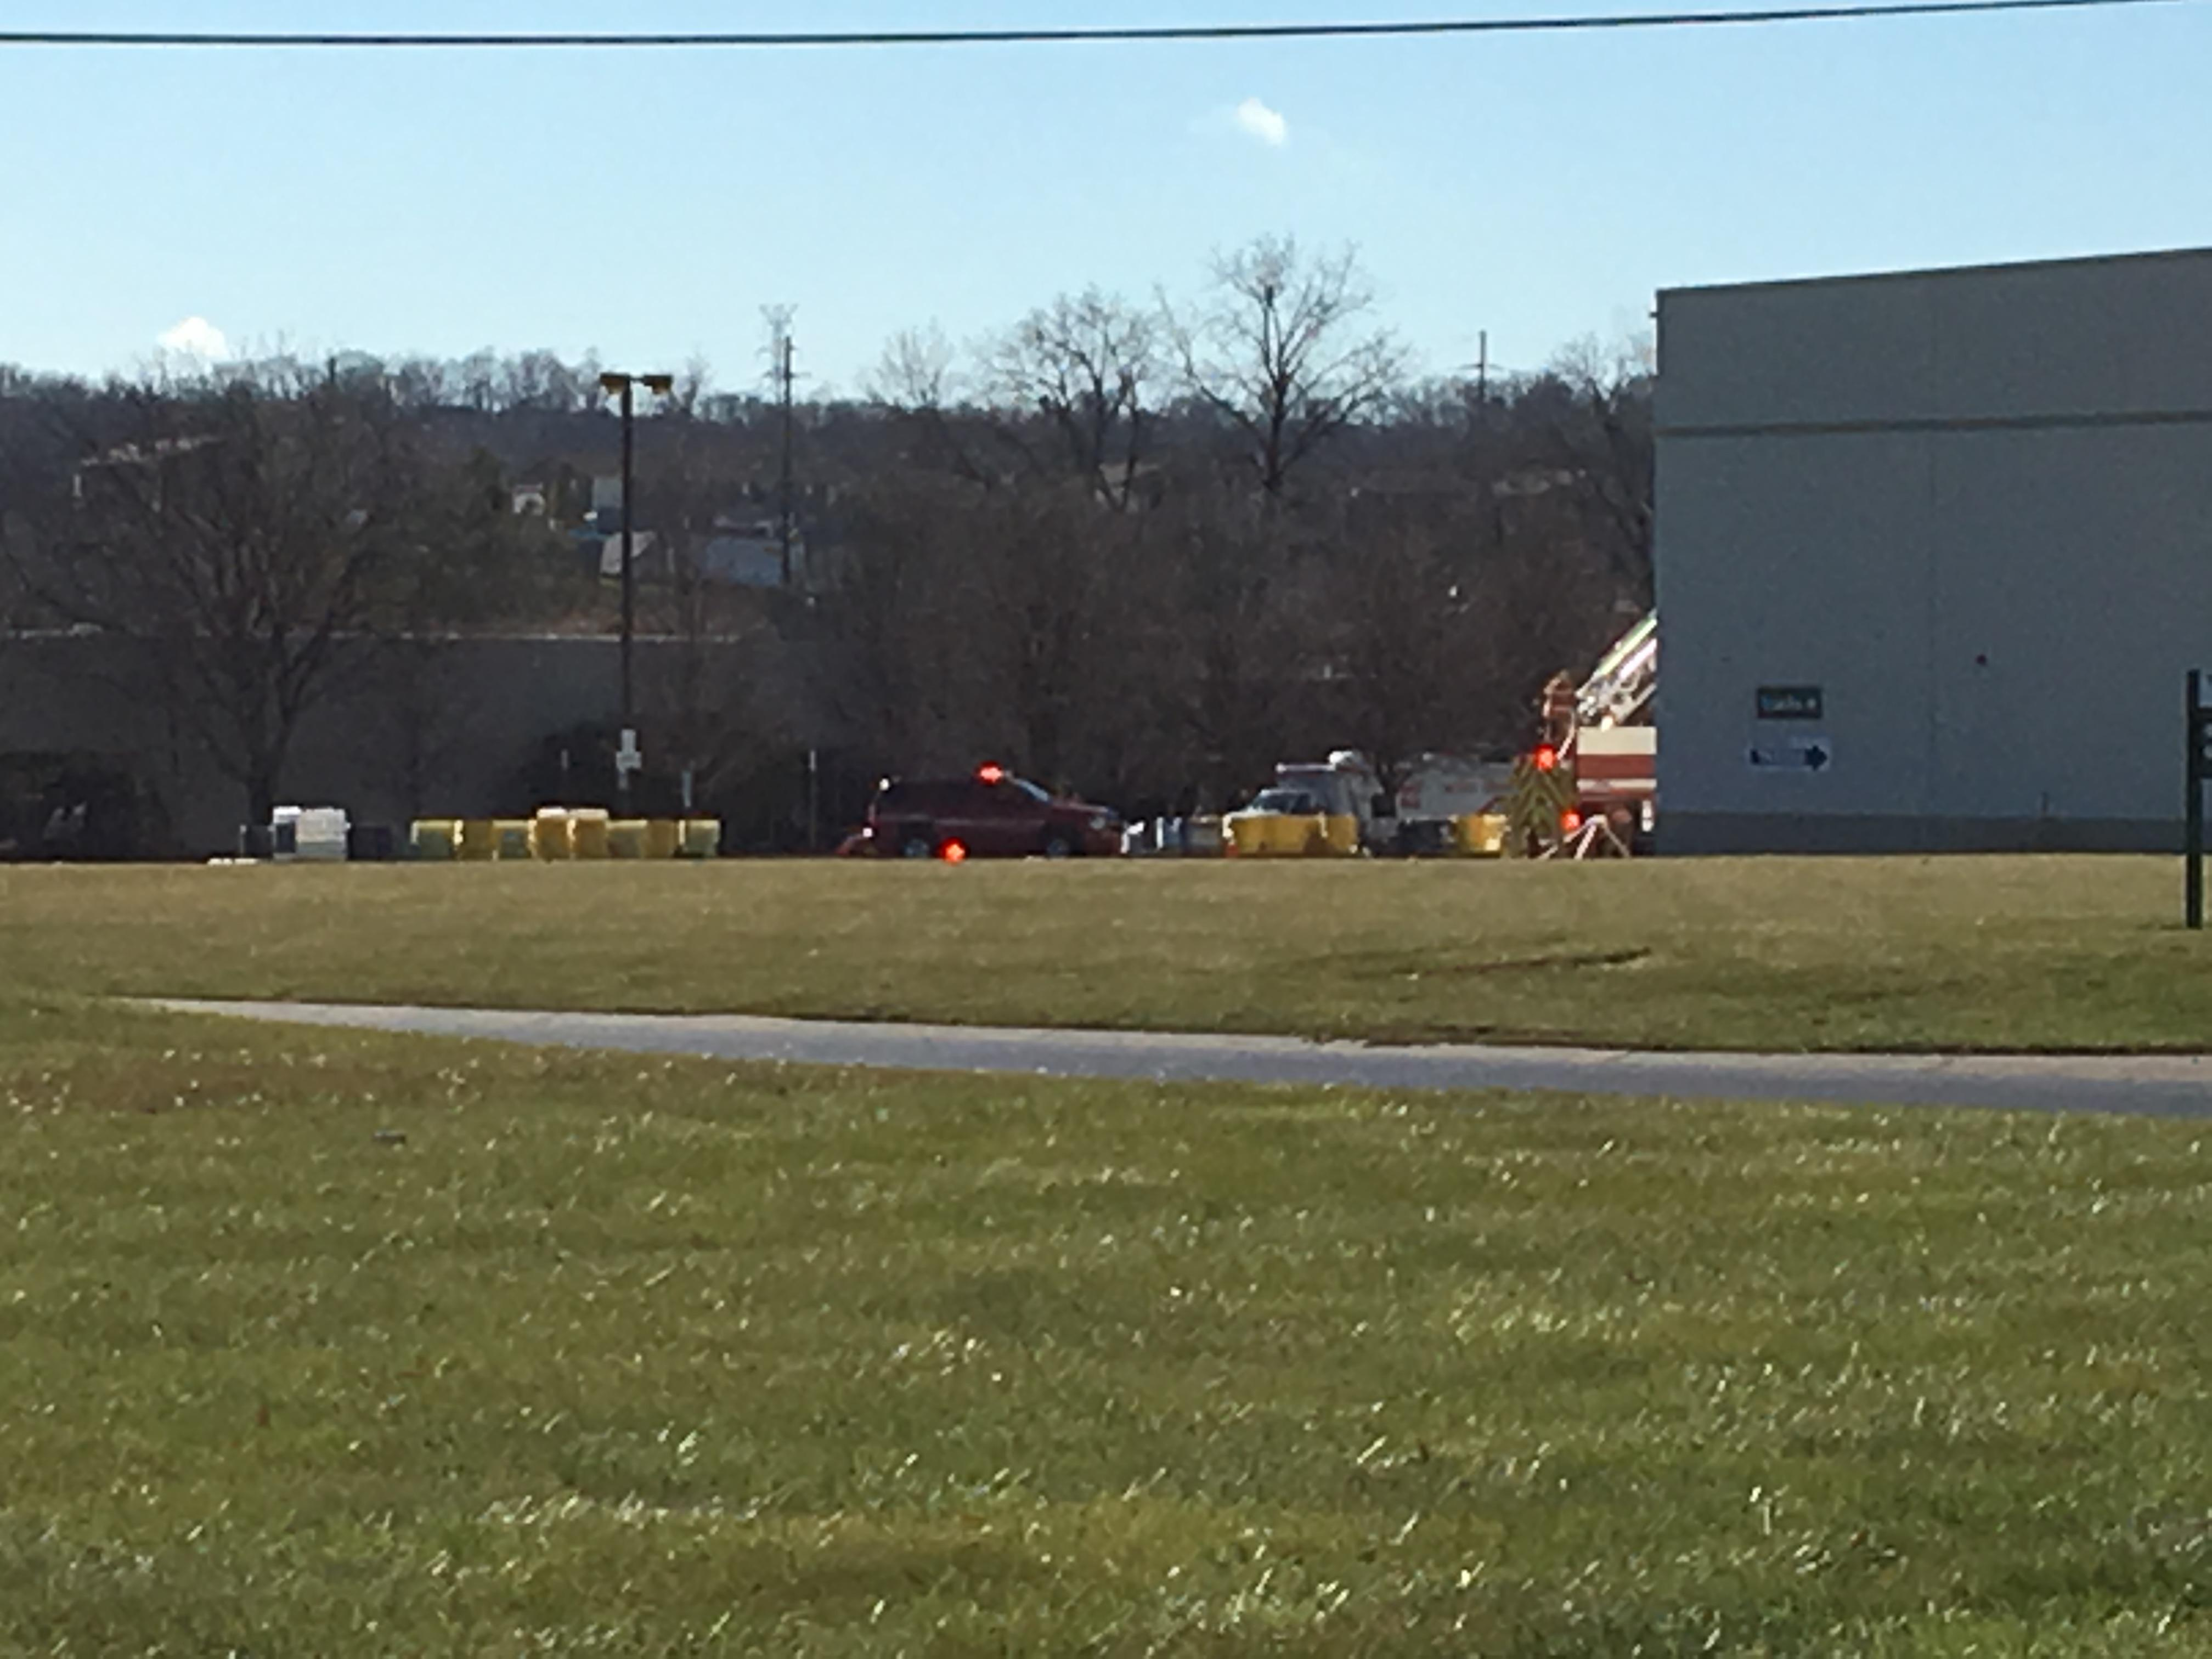 Roads are blocked off due to a situation at Commonwealth Chemicals in Fairfield (WKRC)